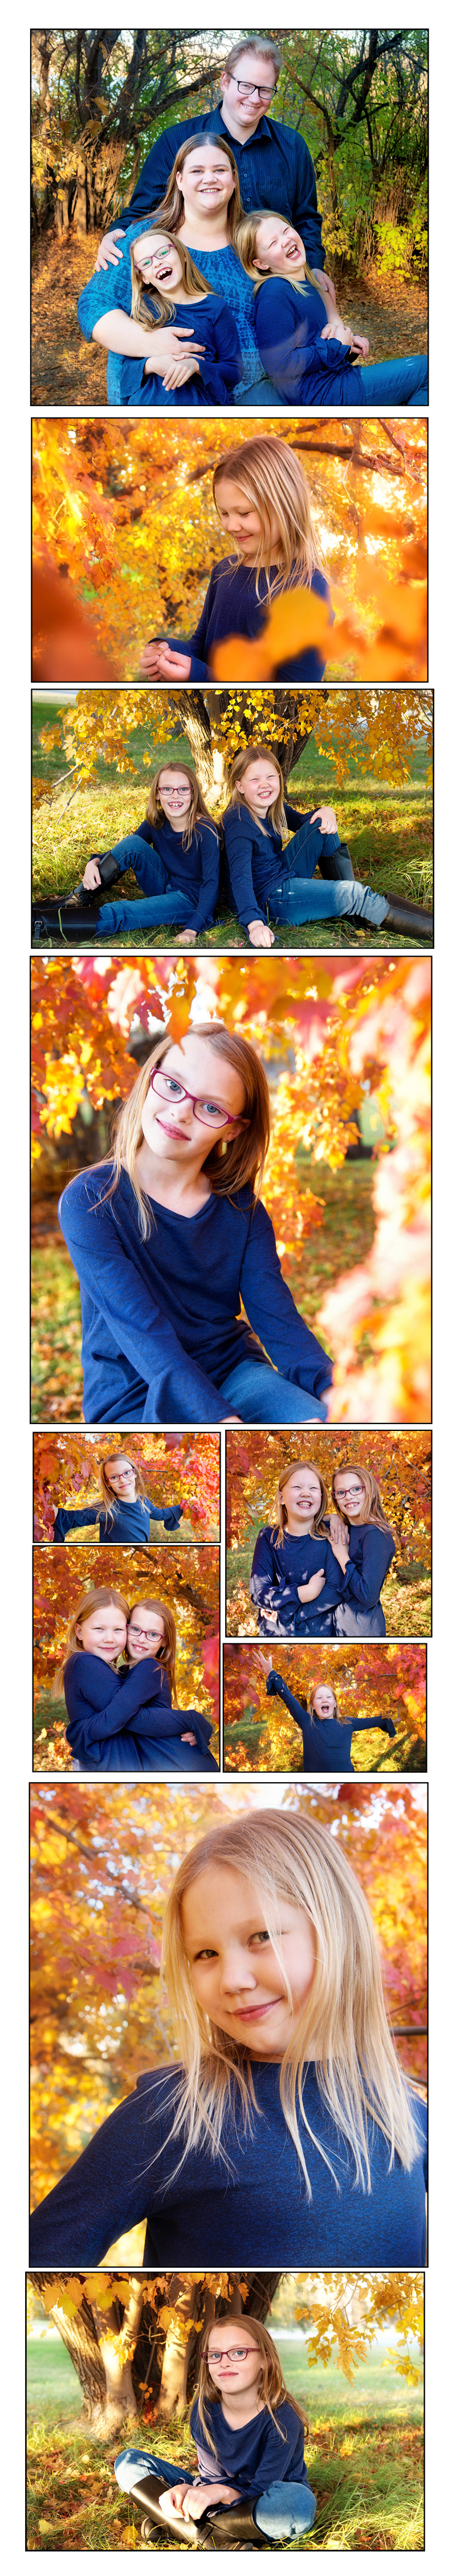 beautiful-family-fall-photos-regina-free-lense-photo-02.jpg